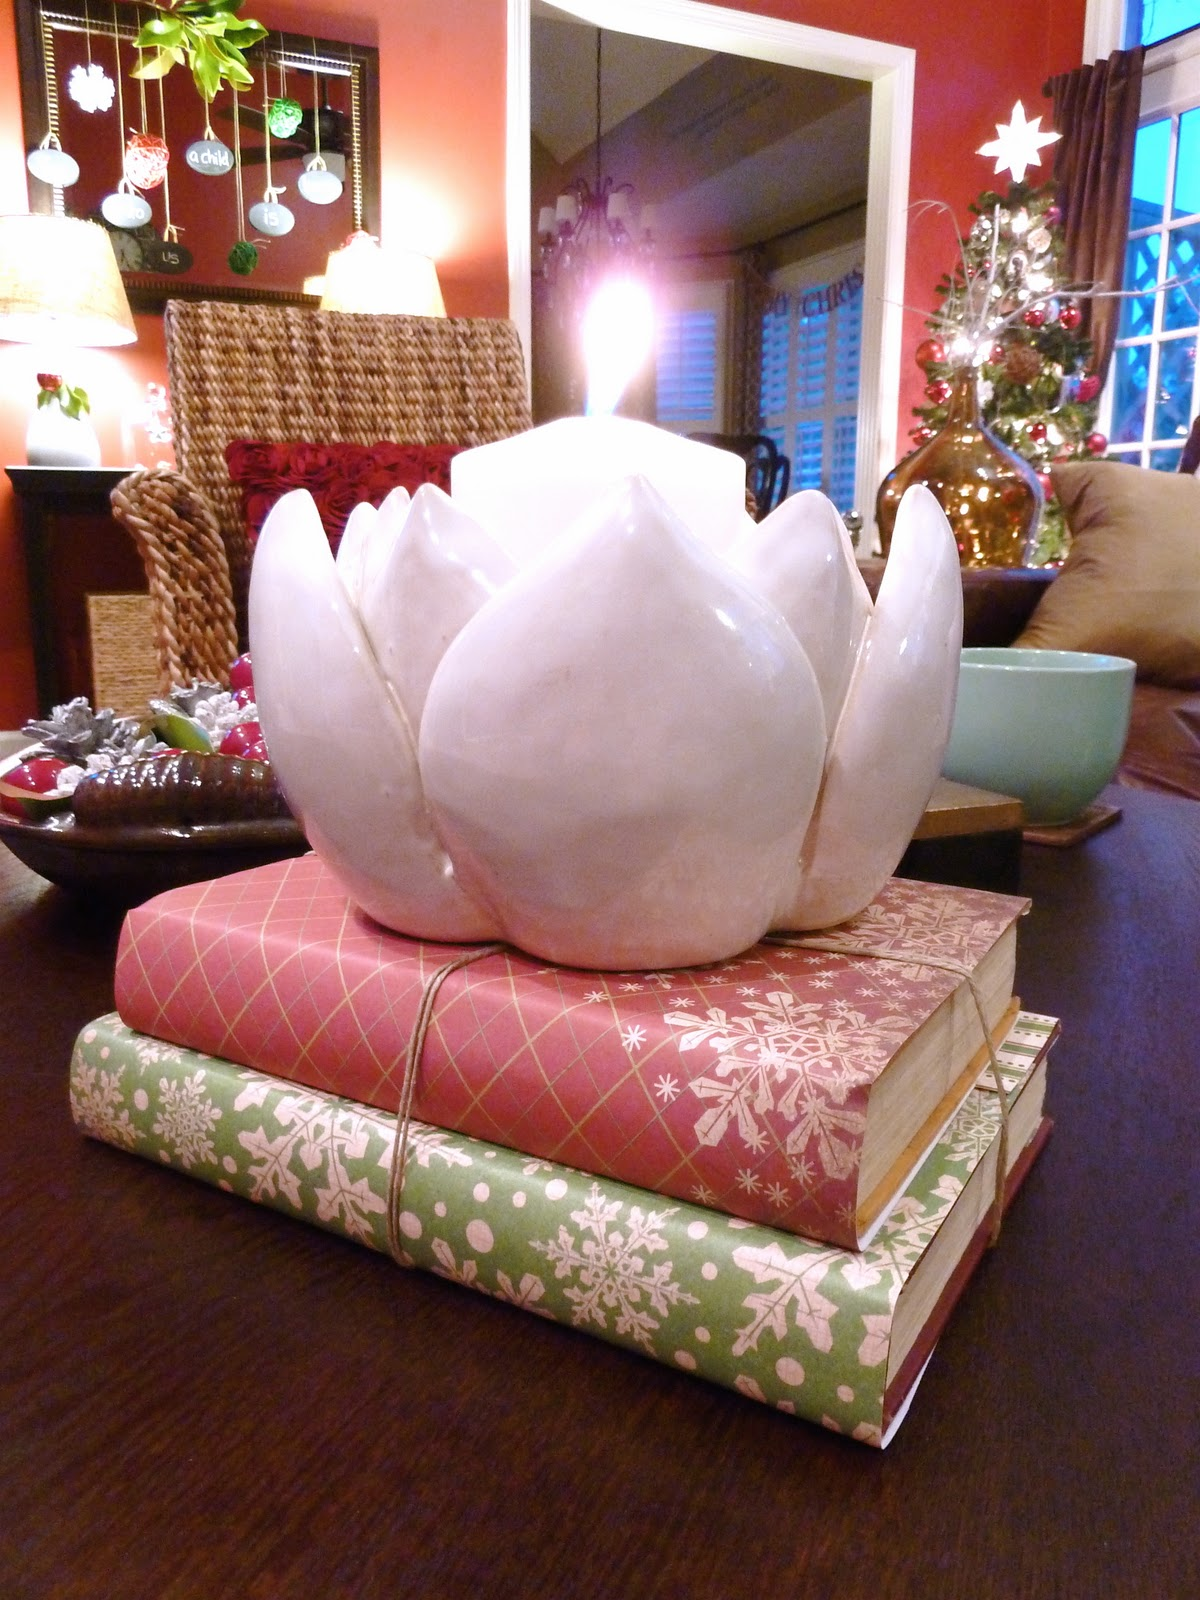 Scrapbook paper booklet - I Tied Them Up With A Little Twine And Placed My Lotus Flower Candle Holder Arhaus 30 Off Sale On Top So Easy So Simple So Sweet